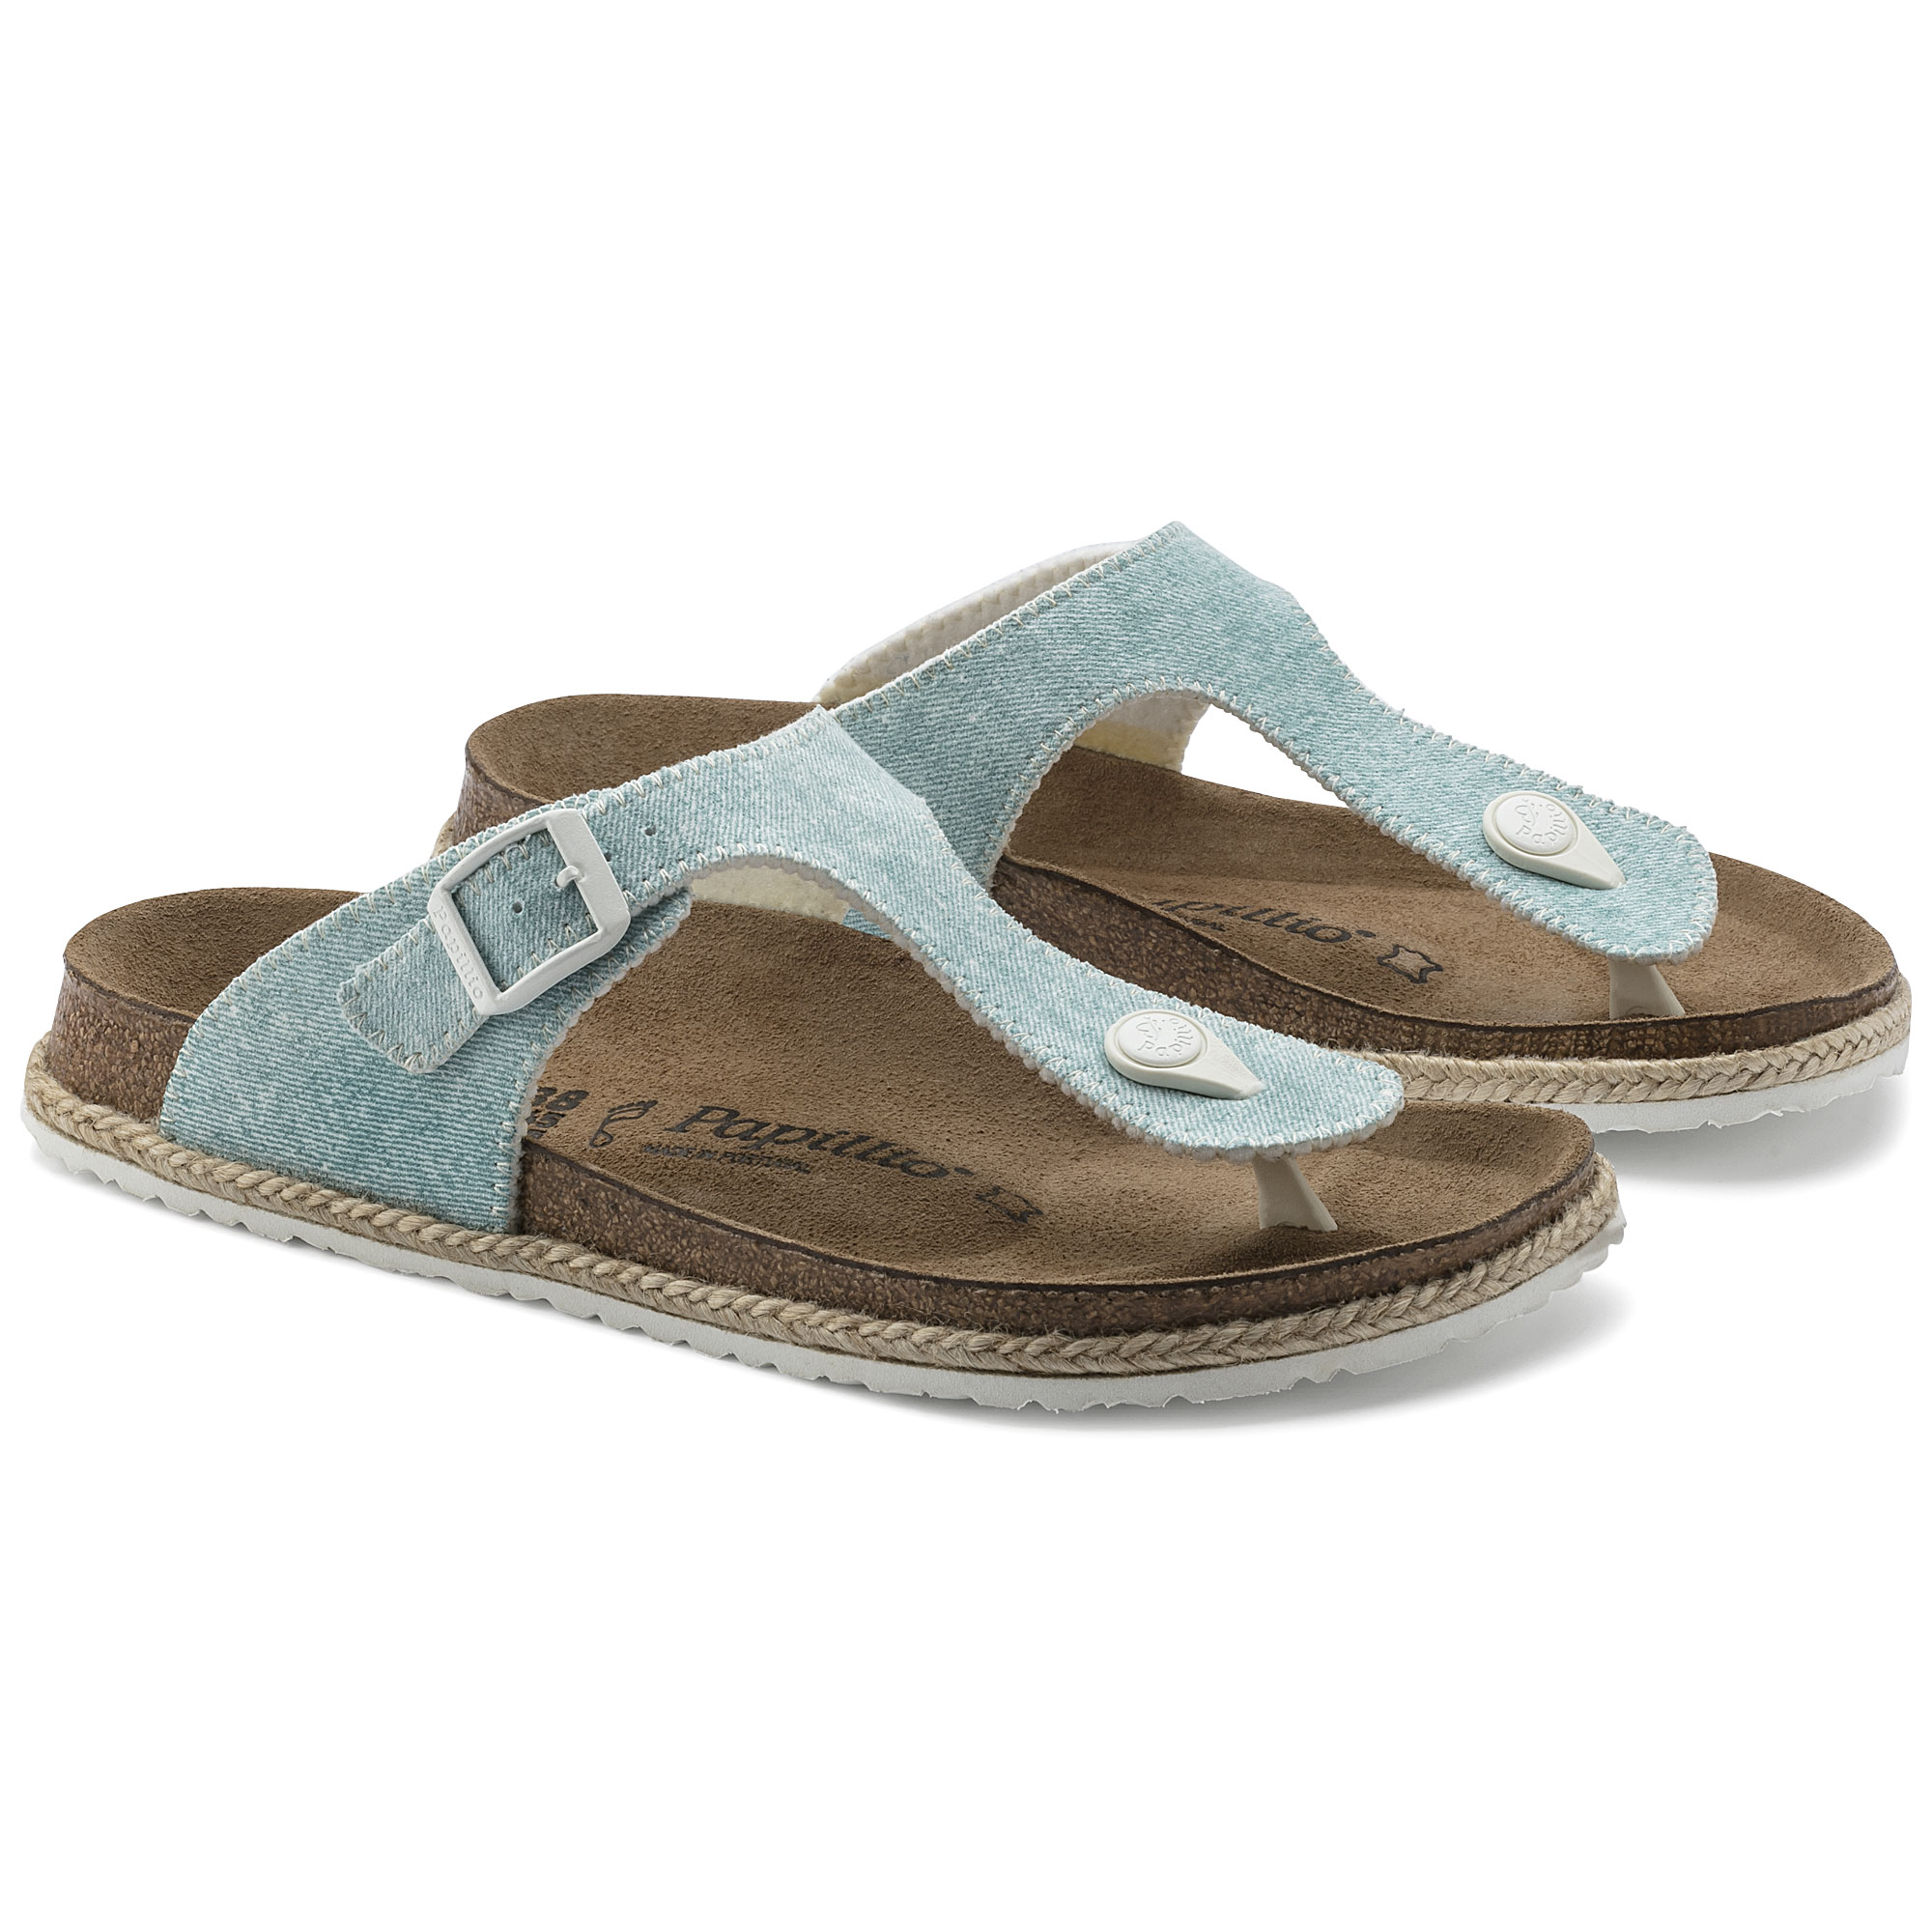 Gizeh Birko Flor Beach Light Blue